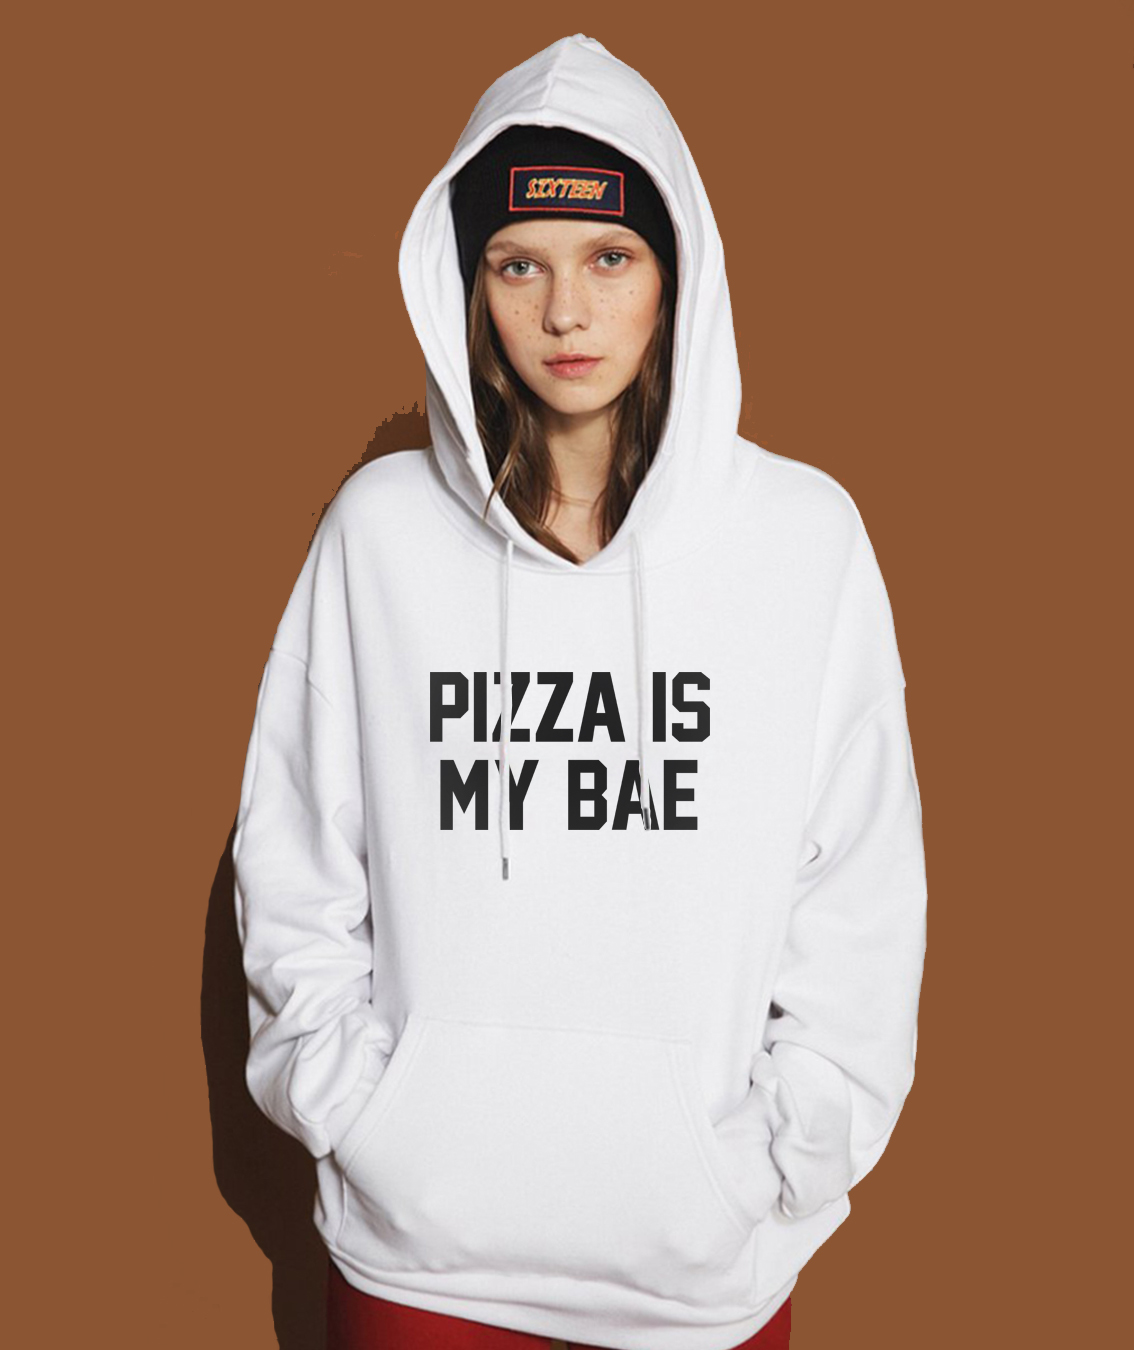 2019 Spring Winter Sweatshirt Hoody For Women Letter Print PIZZA IS MY BAE Funny Women's Hoodies Pullover Female Sweatshirts